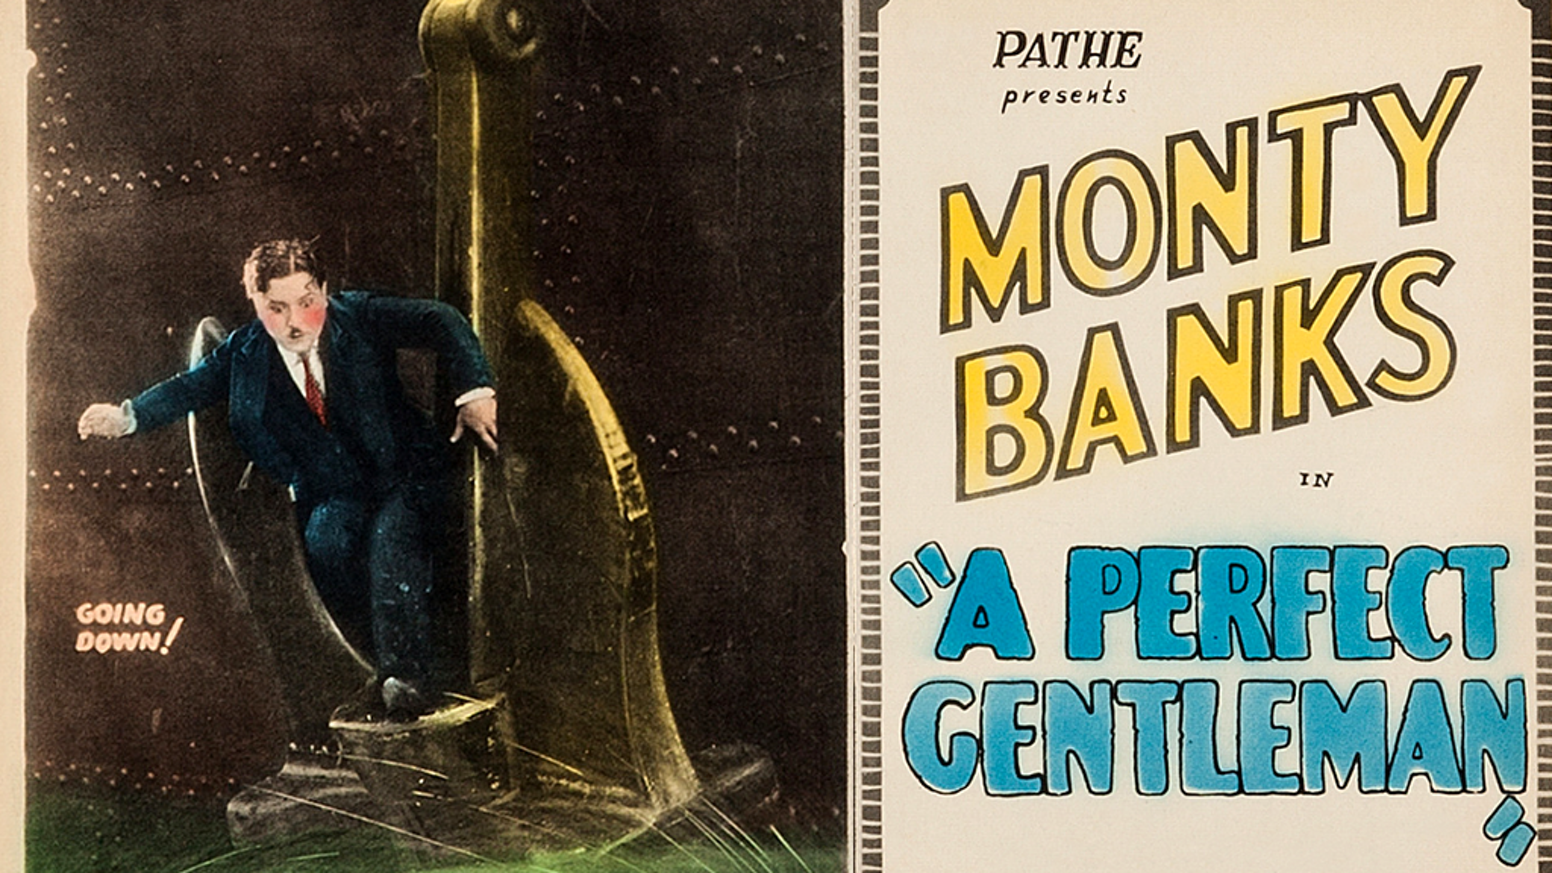 Monty Banks in the 1928 comedy feature A PERFECT GENTLEMAN  plus two Monty Banks comedy shorts on DVD and Blu-ray!